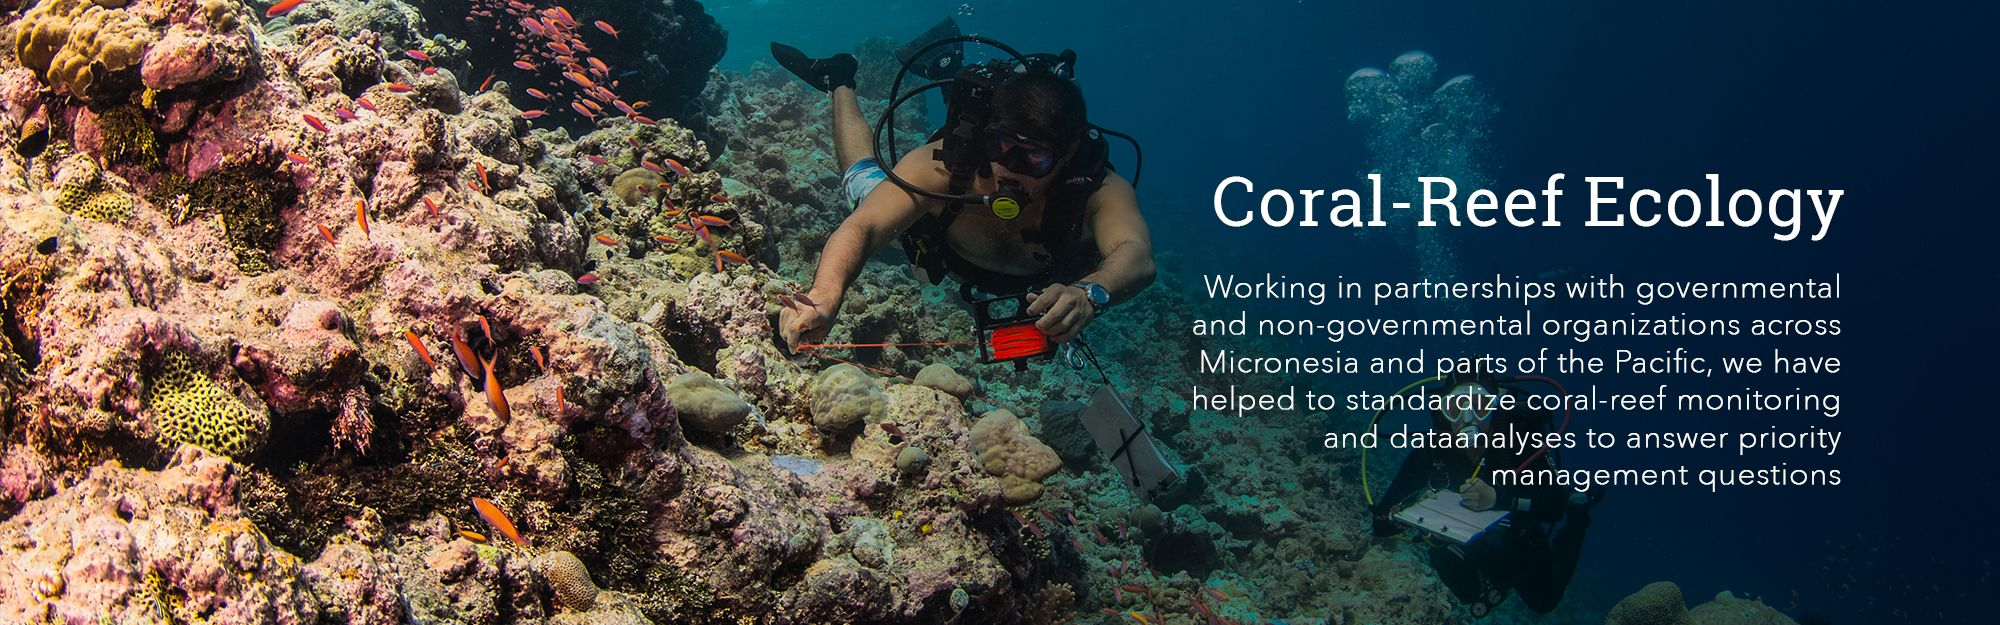 Coral-reef ecology